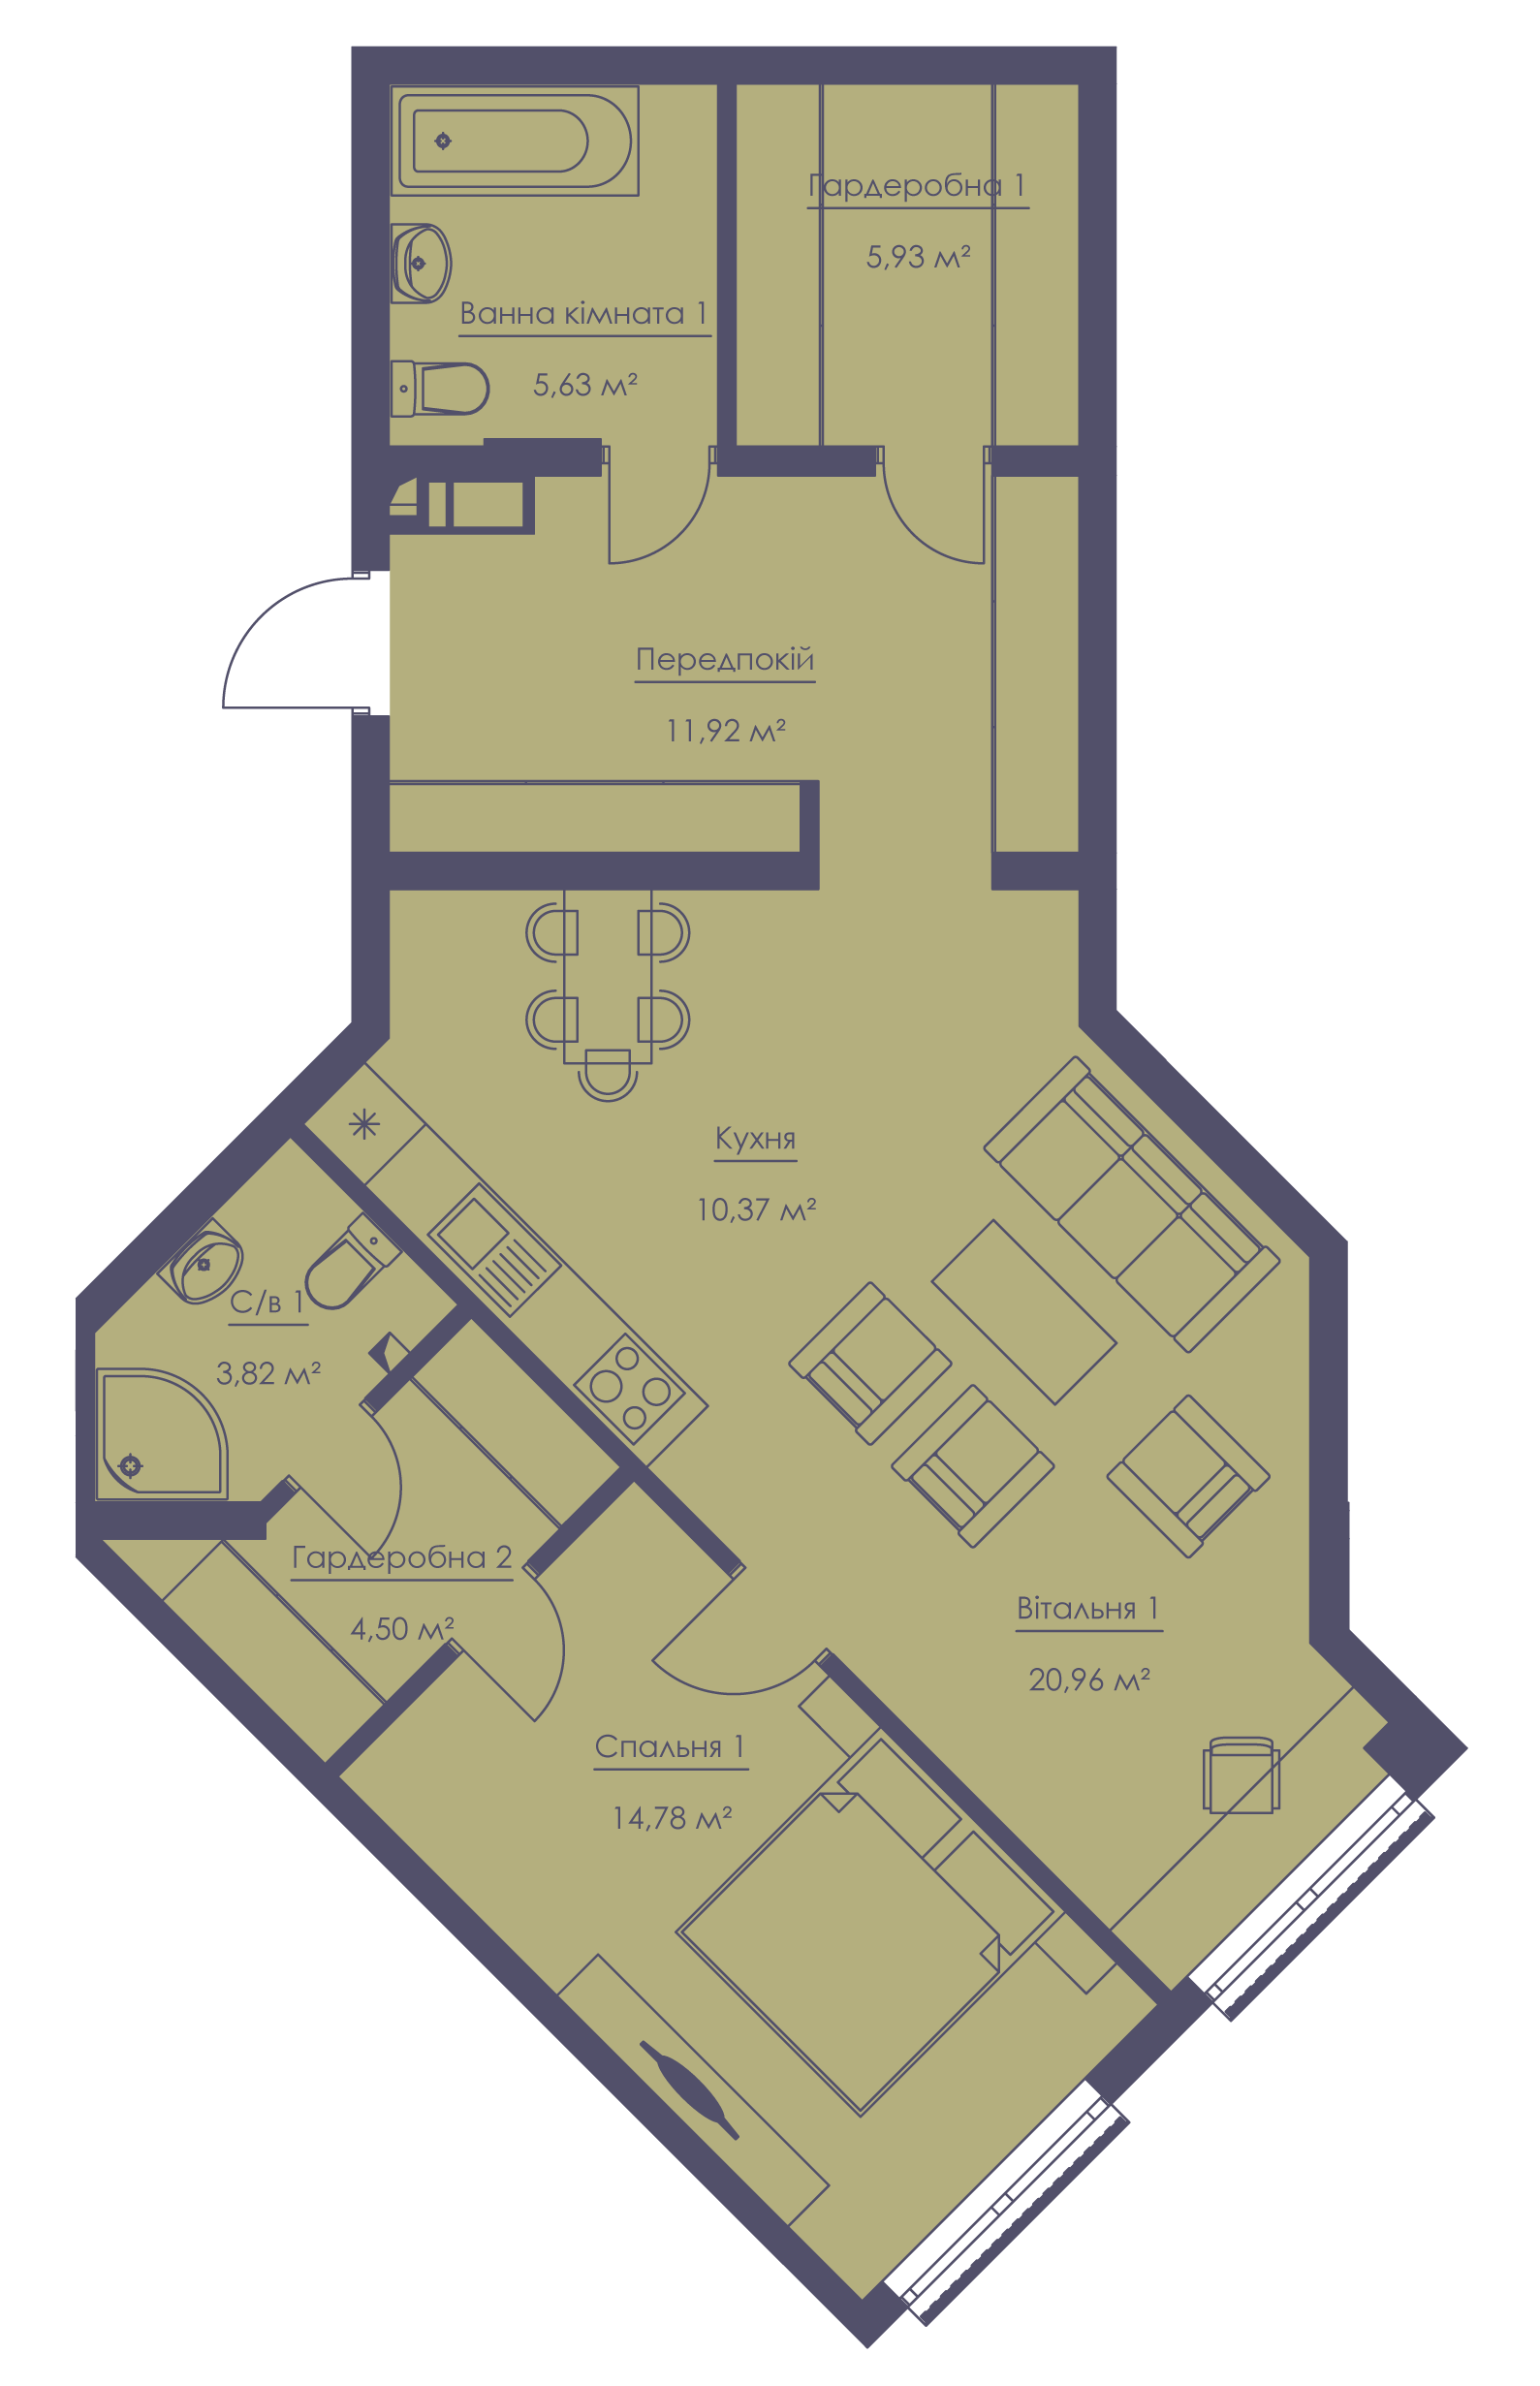 Apartment layout KV_12_1.2l_1_1_12-1